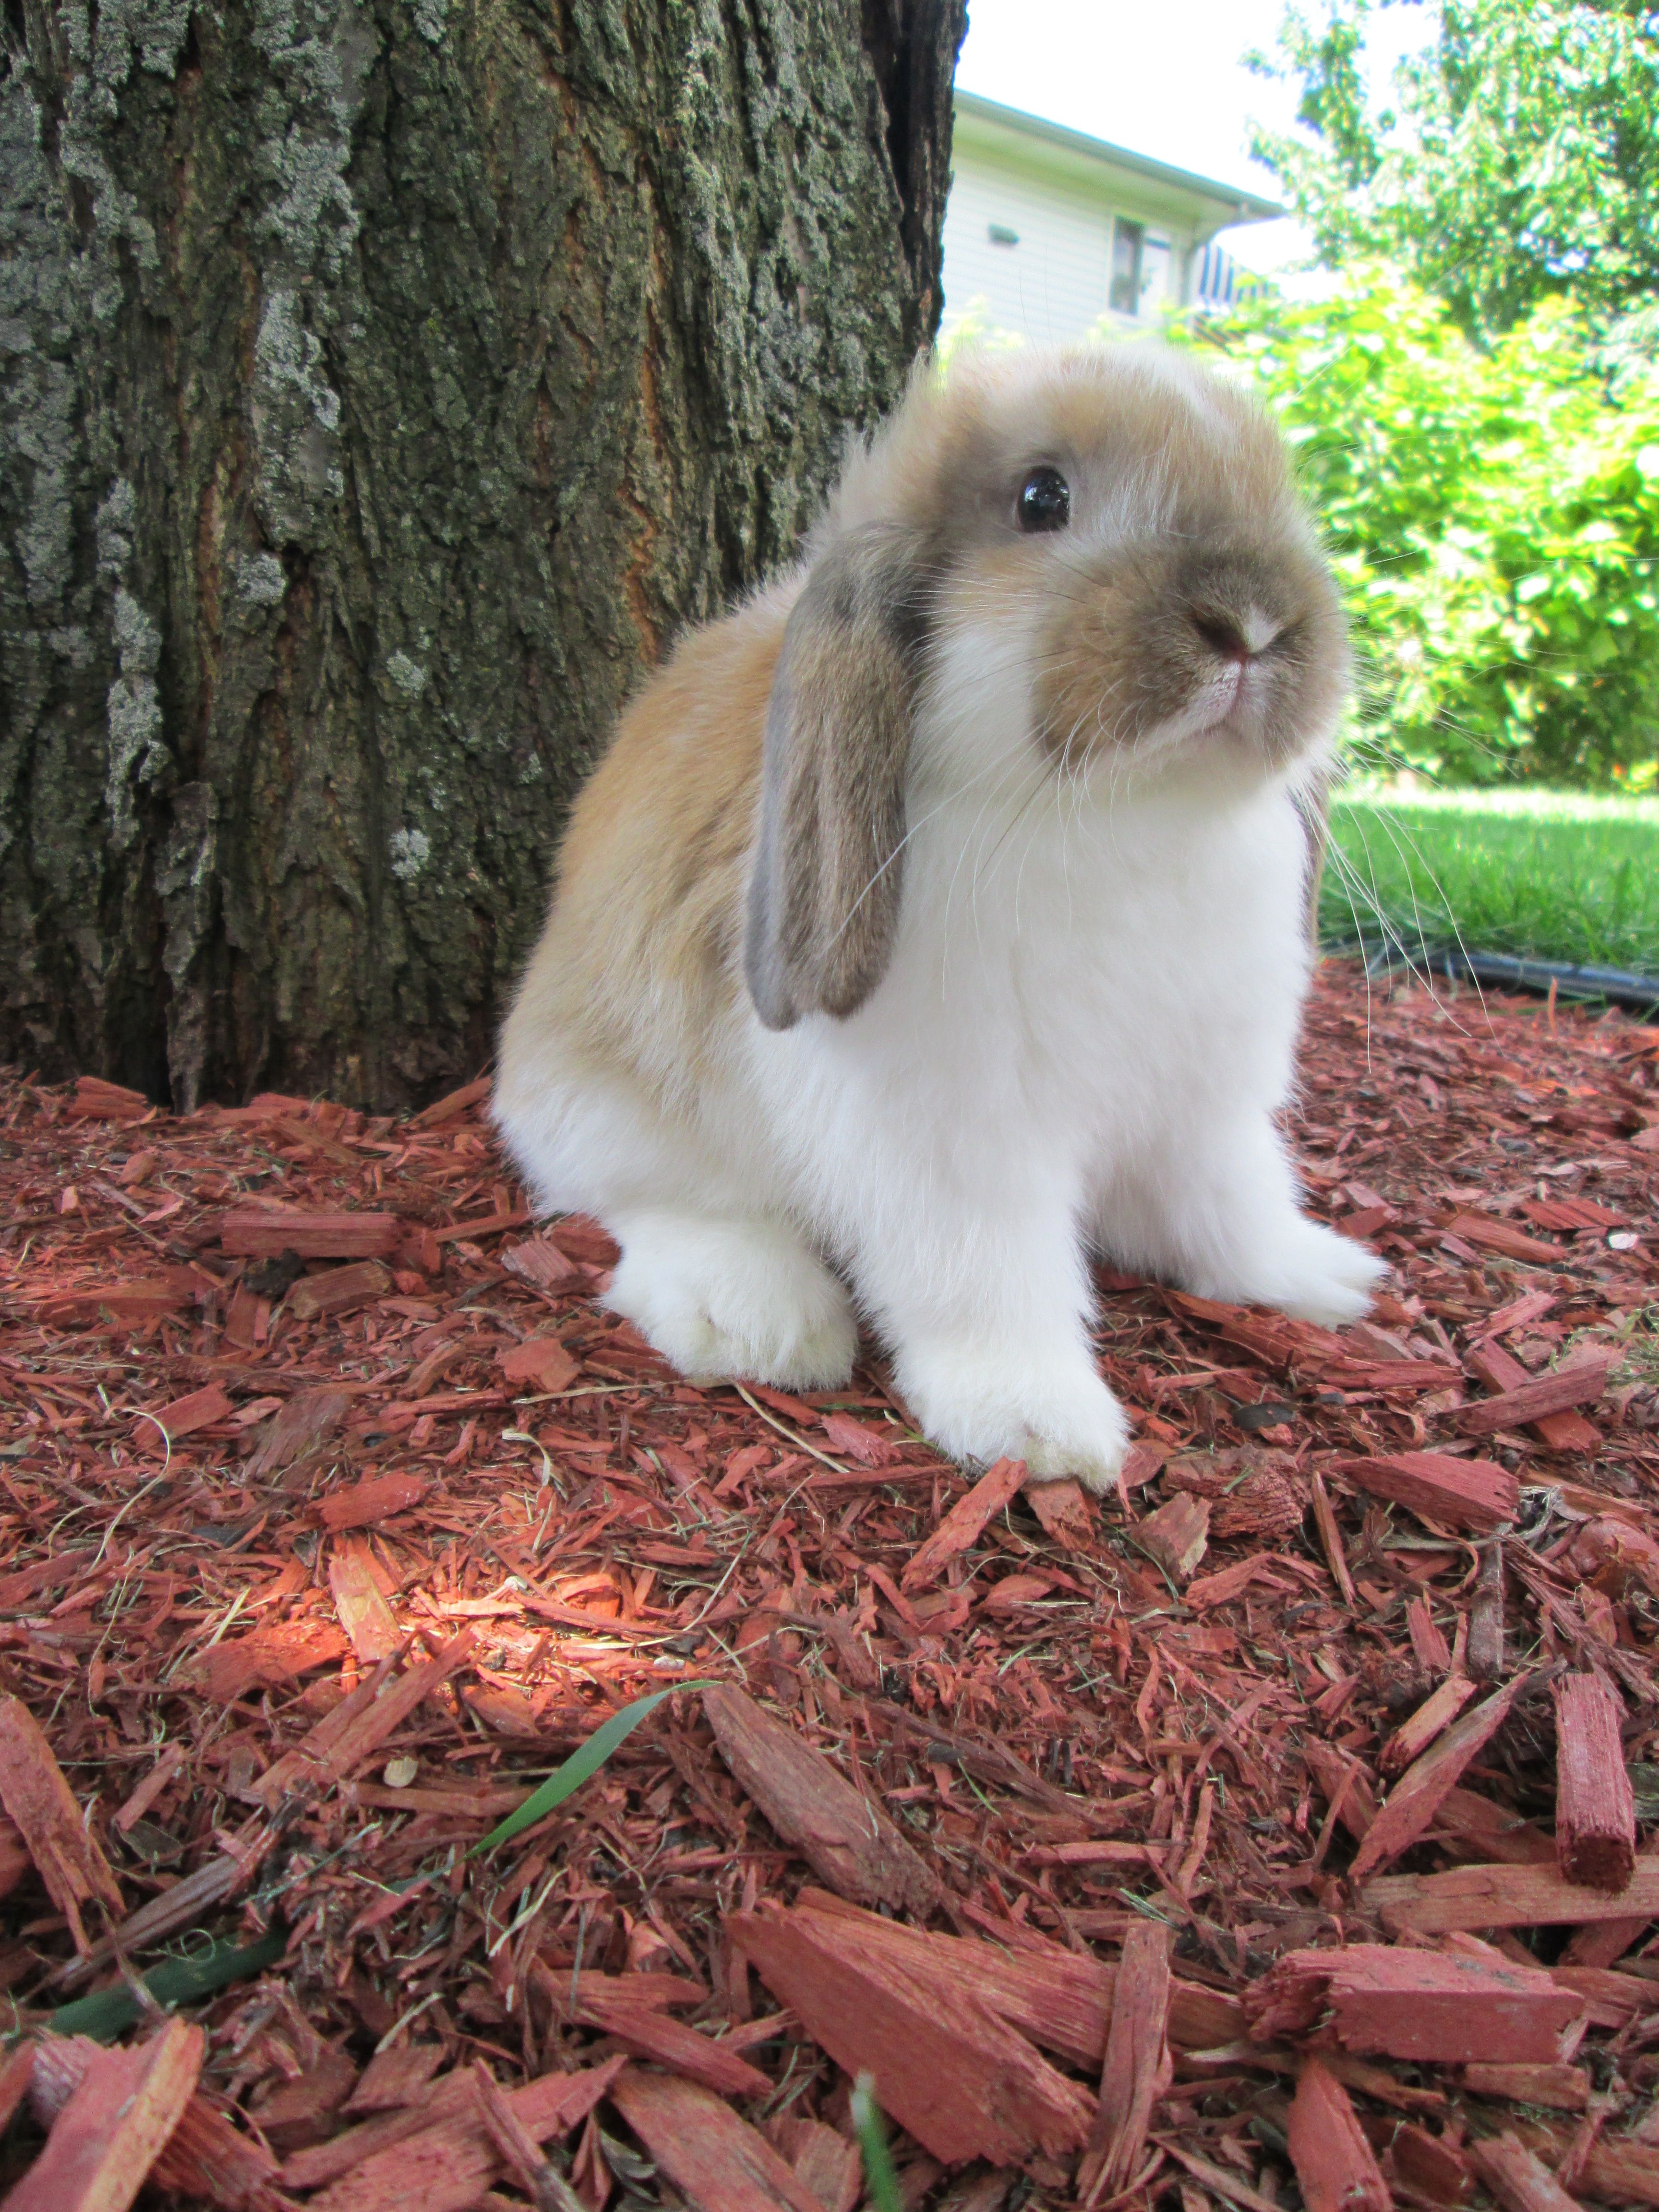 I Have Fallen In Love With A Lop Bunny Named Flip Floppsy She